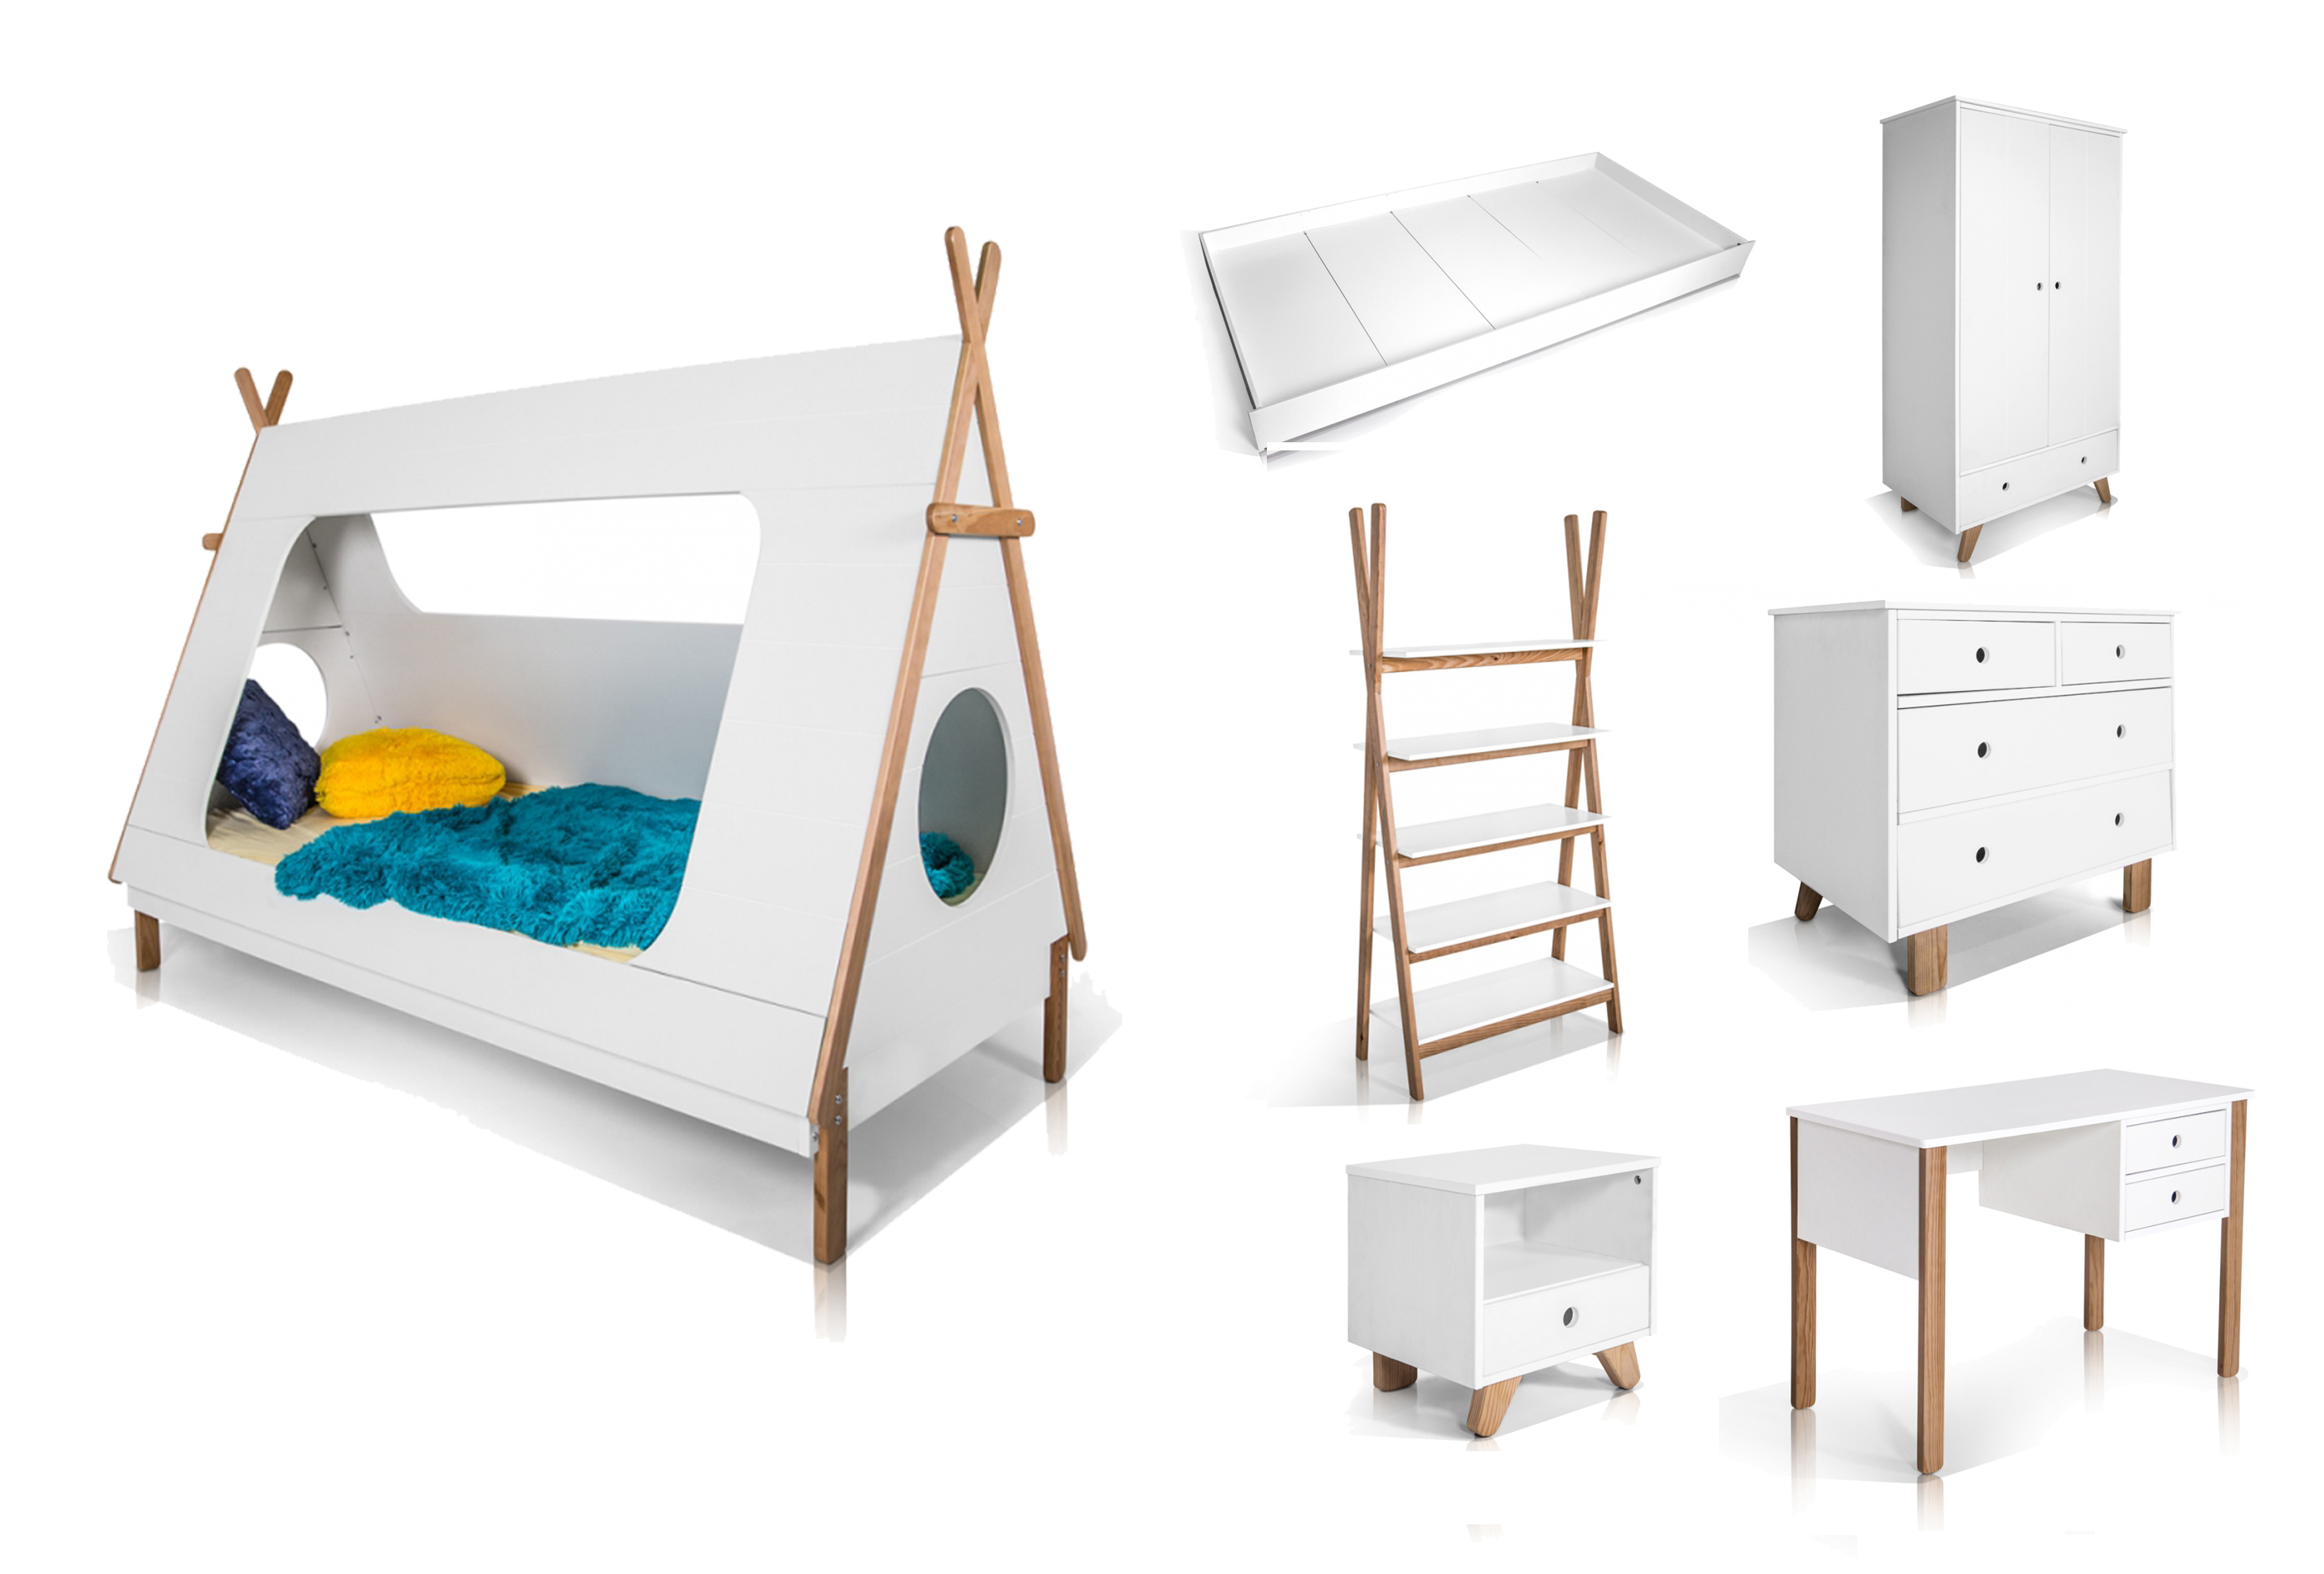 kinderzimmer m belprogramm indianer bett schrank schreibtisch wei w hlen sie ebay. Black Bedroom Furniture Sets. Home Design Ideas